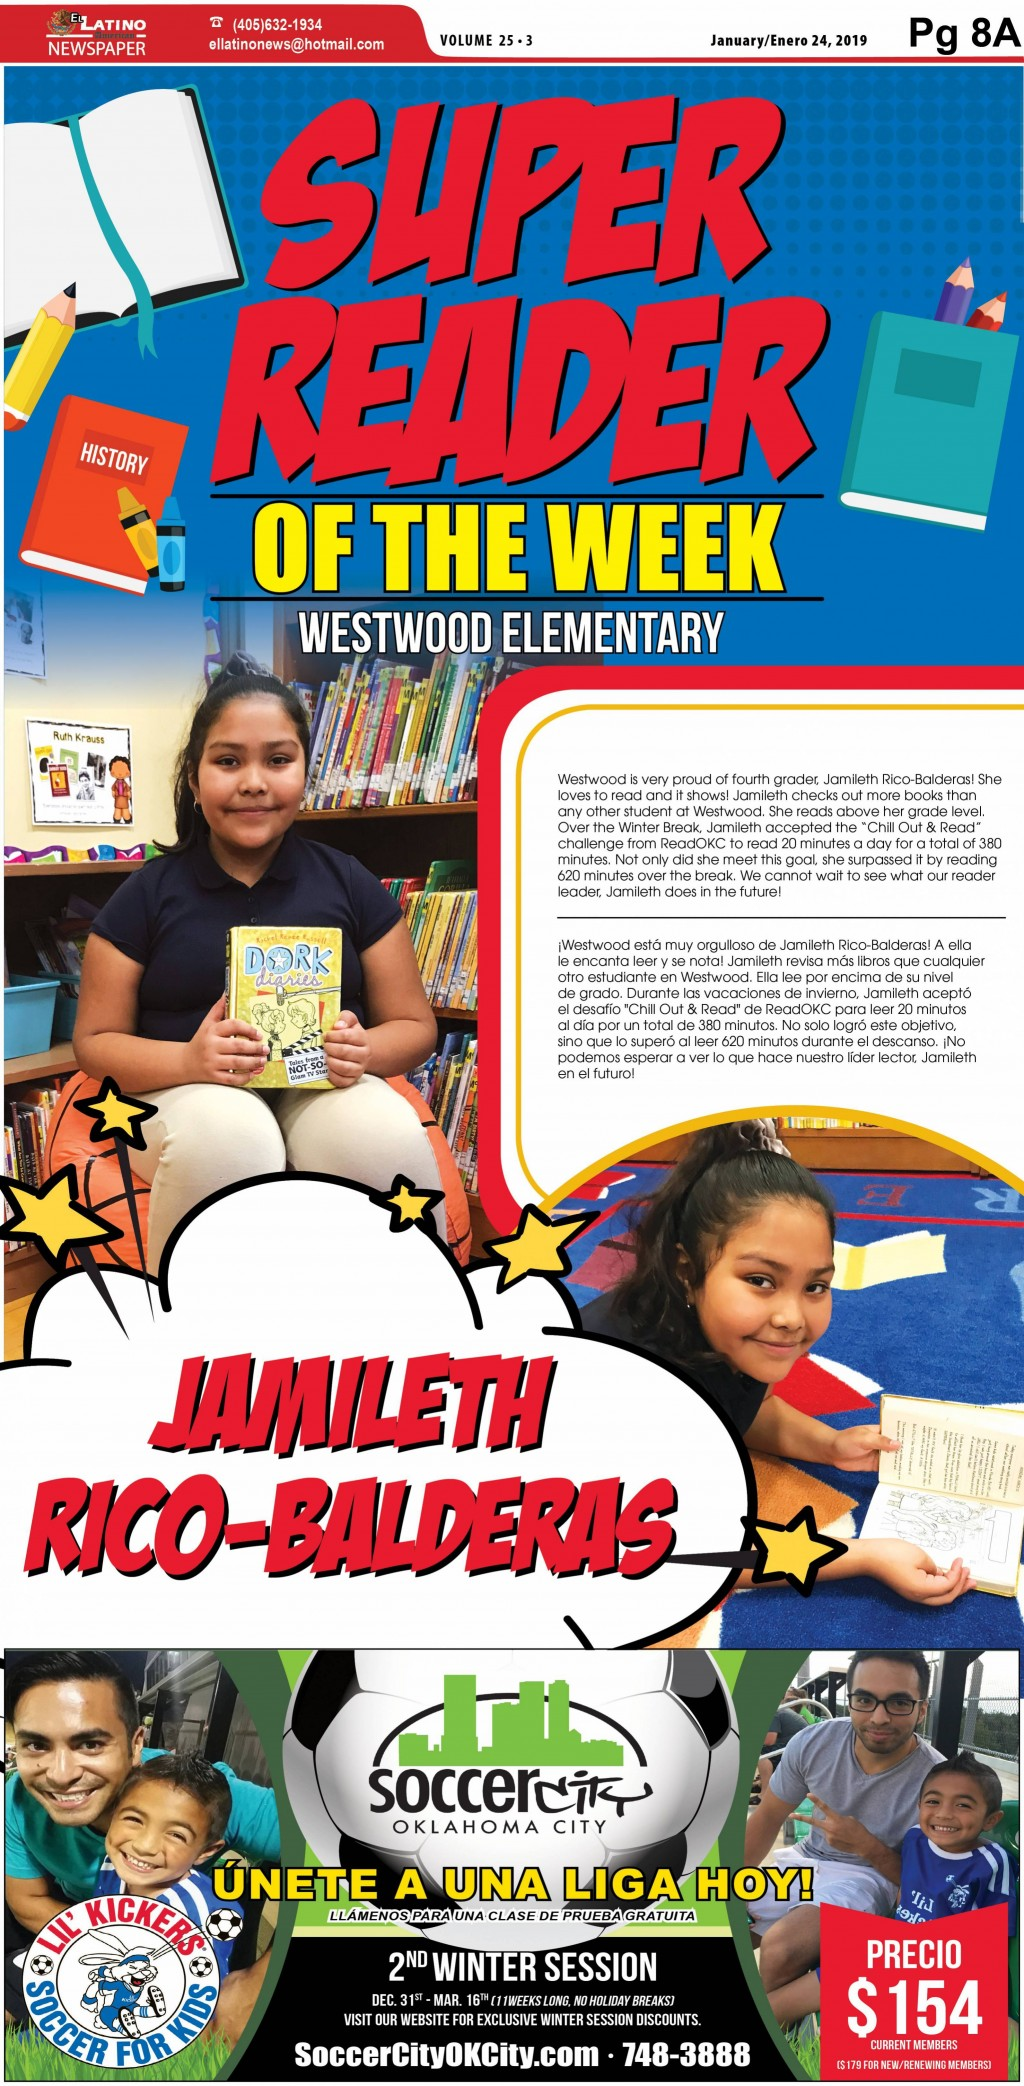 Super Reader of the Week: Jamileth Rico - Balderas